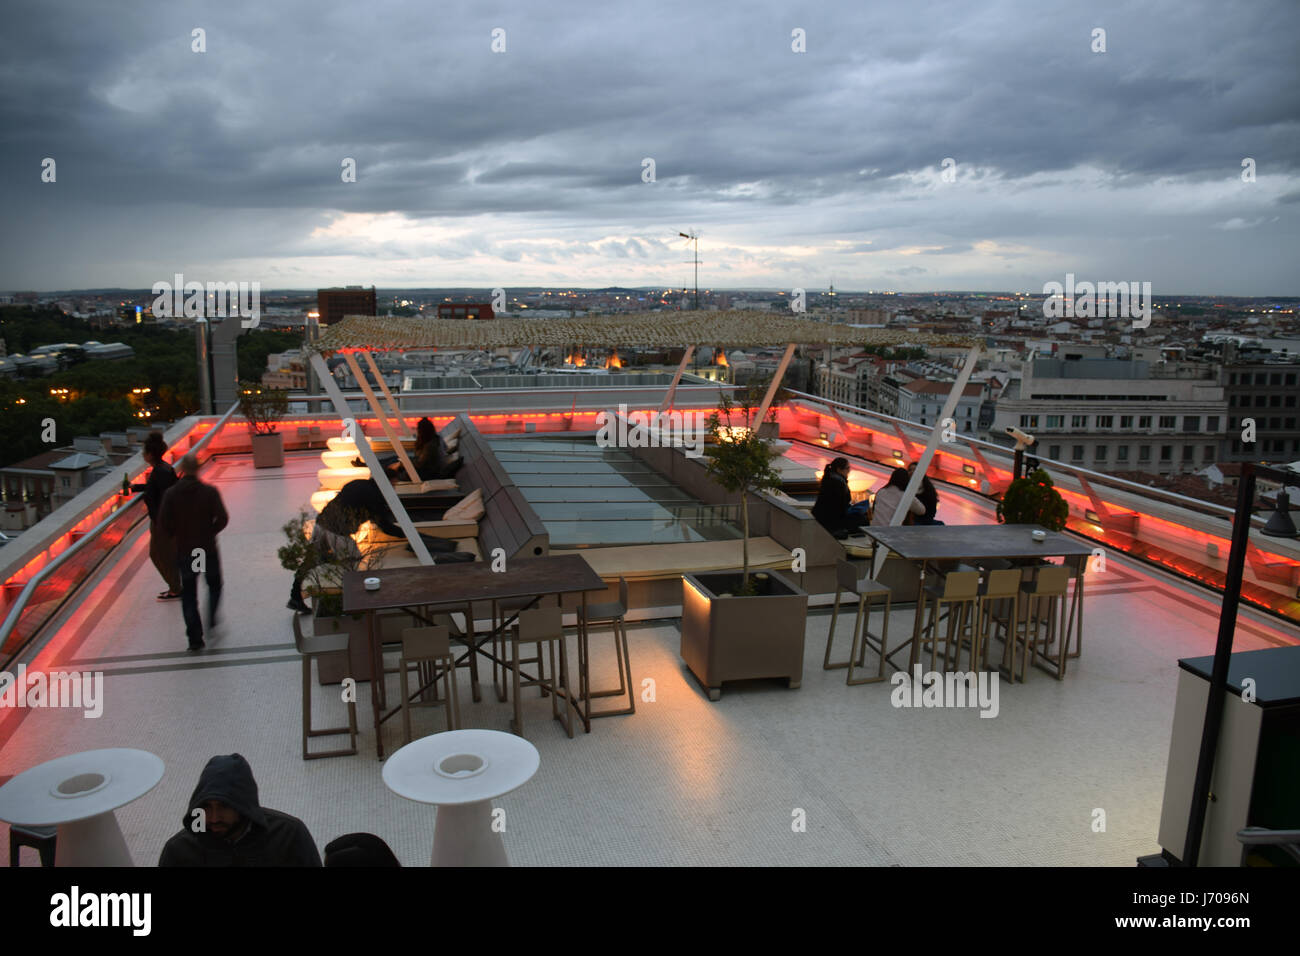 Rooftop bar & restaurant, Tartan Roof on top of Circulo de Bellas Artes, Madrid, Spain - Stock Image